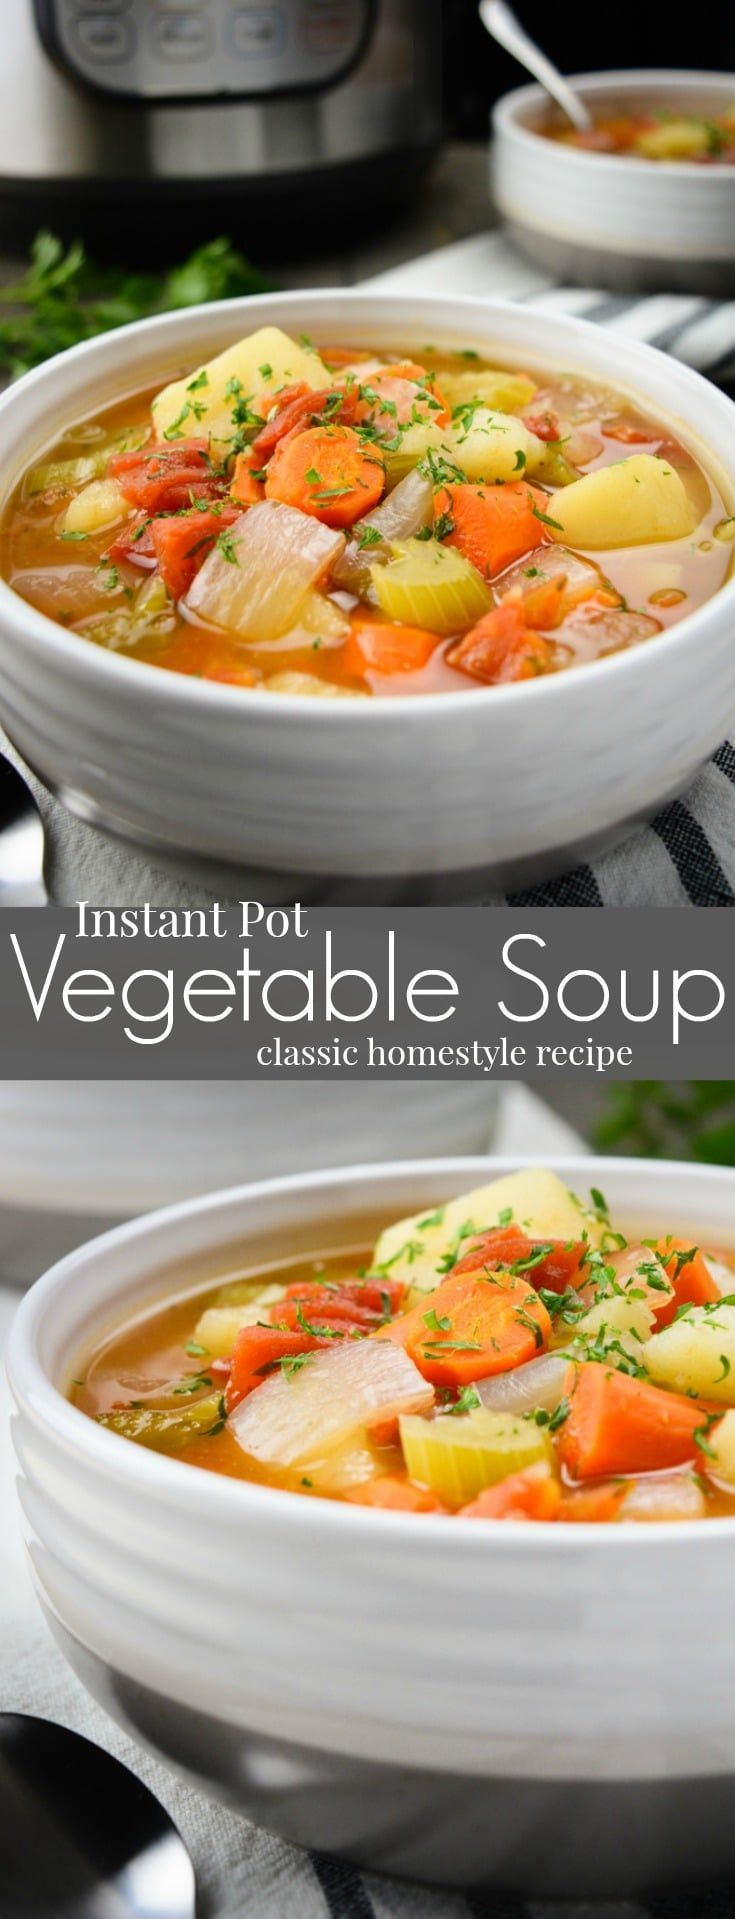 Instant Pot Vegetable Soup is a classic homestyle recipe made with simple ingred…